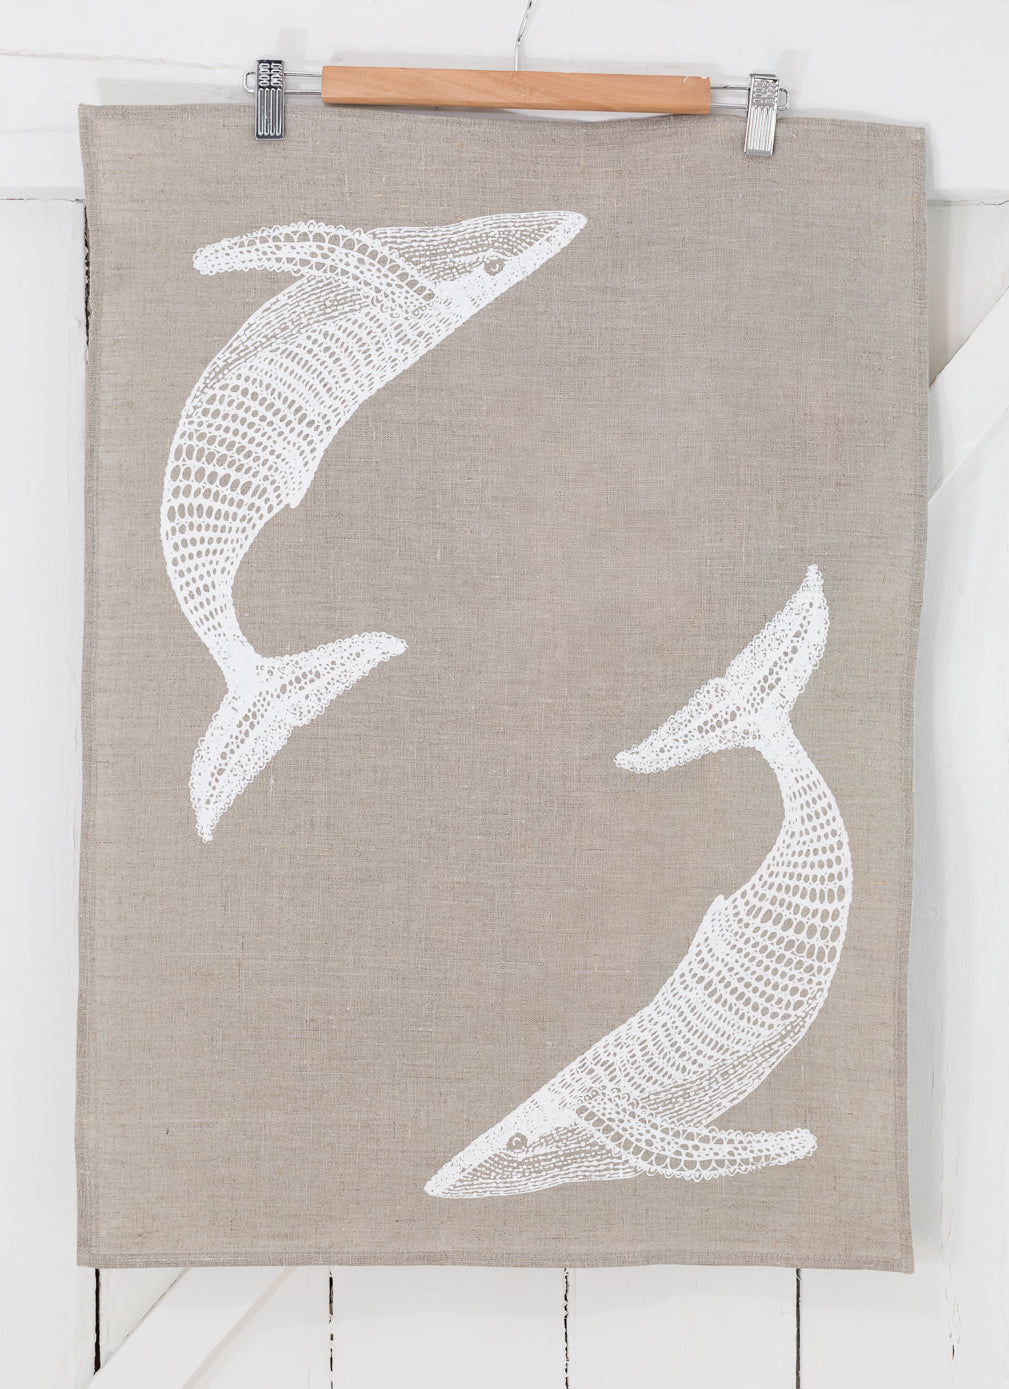 Migalu Yalingbilla (White Humpback) - Handprinted Linen Tea Towel